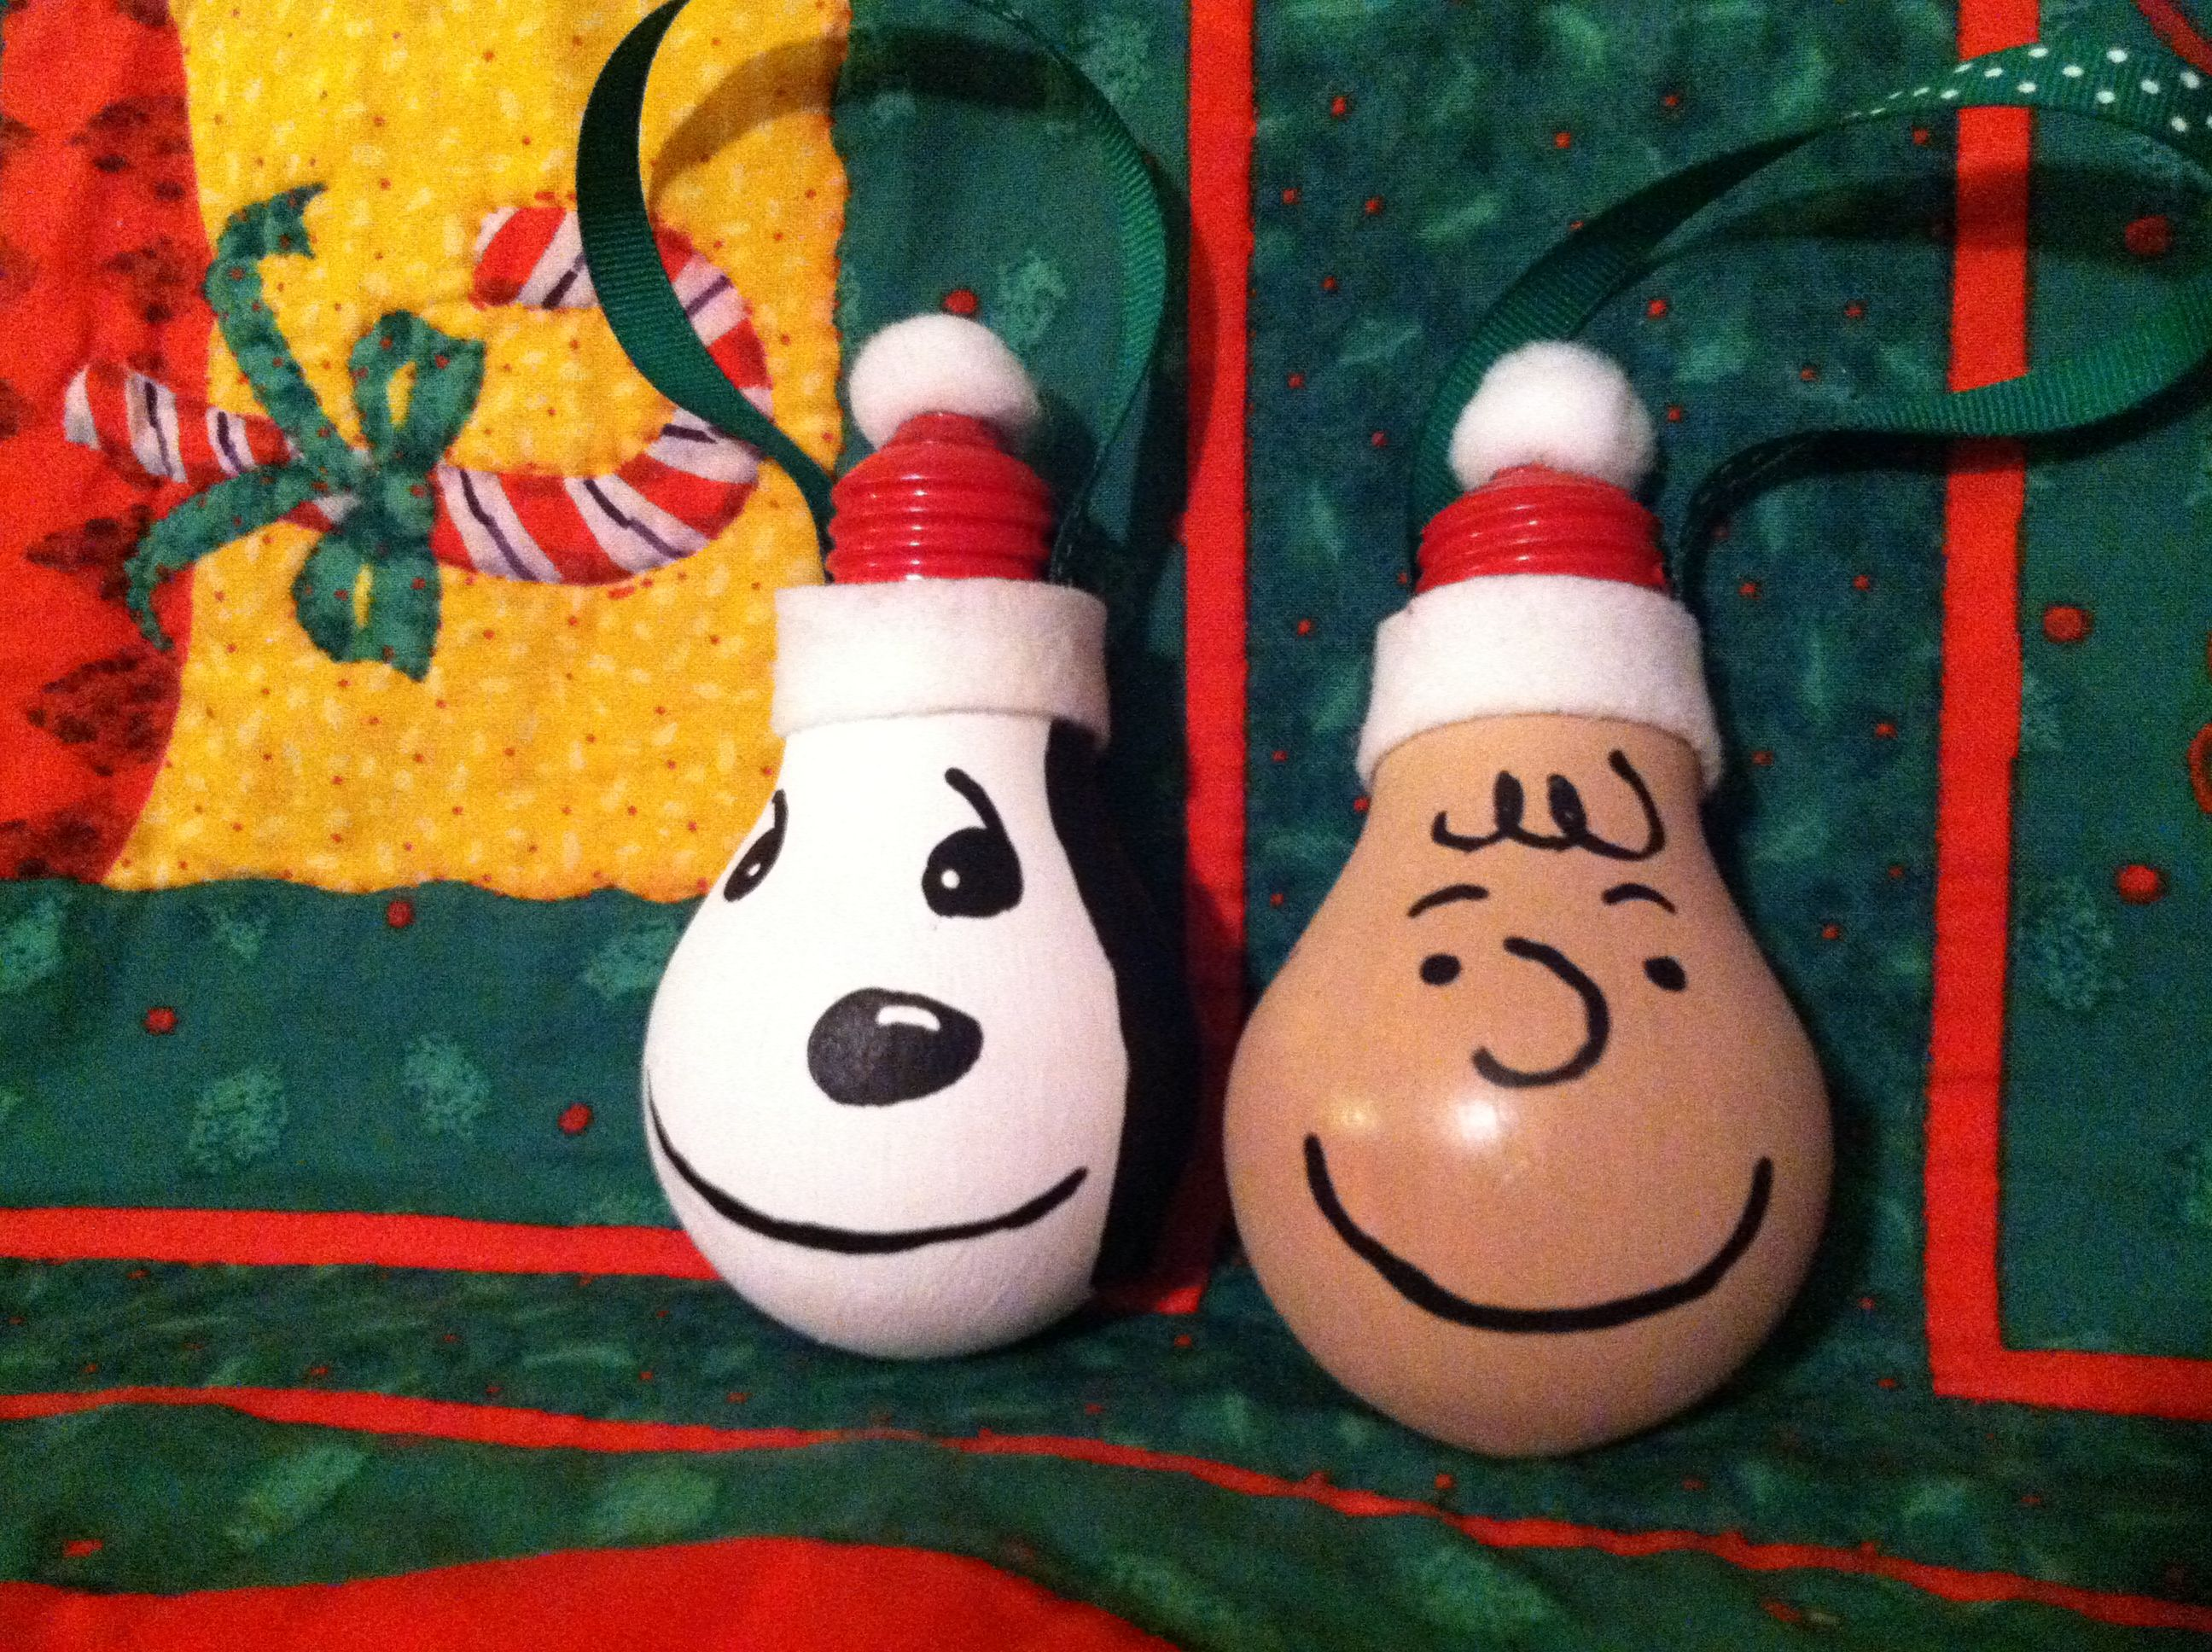 Charlie Brown and Snoopy light bulb ornies